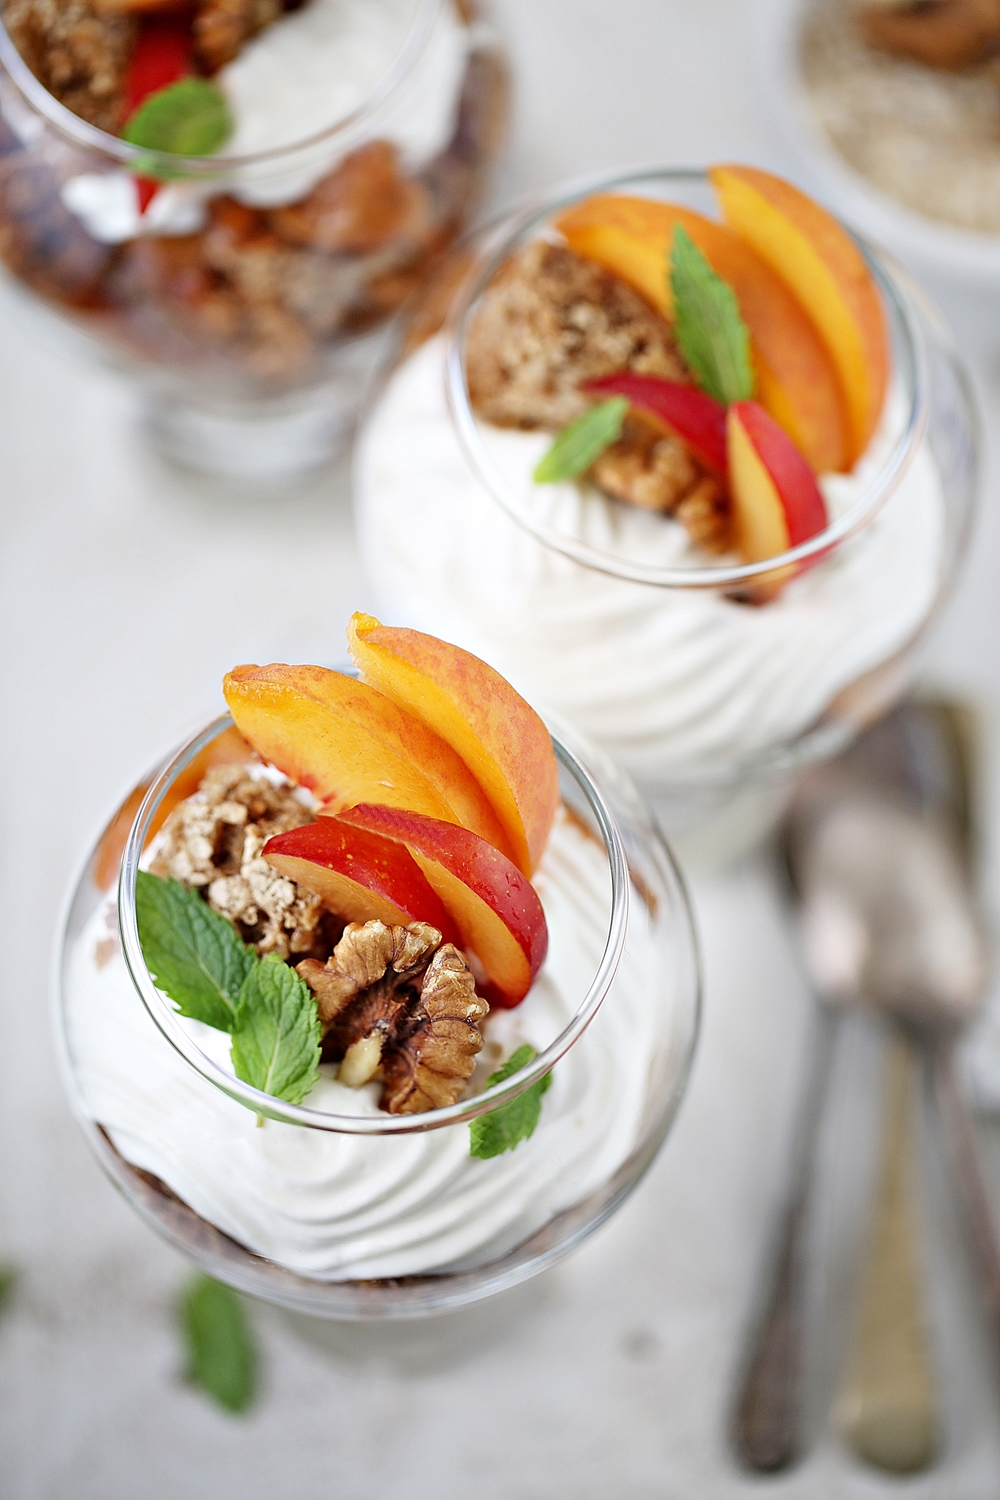 Oat Walnut Trifle Bowls with Roasted Stone Fruit